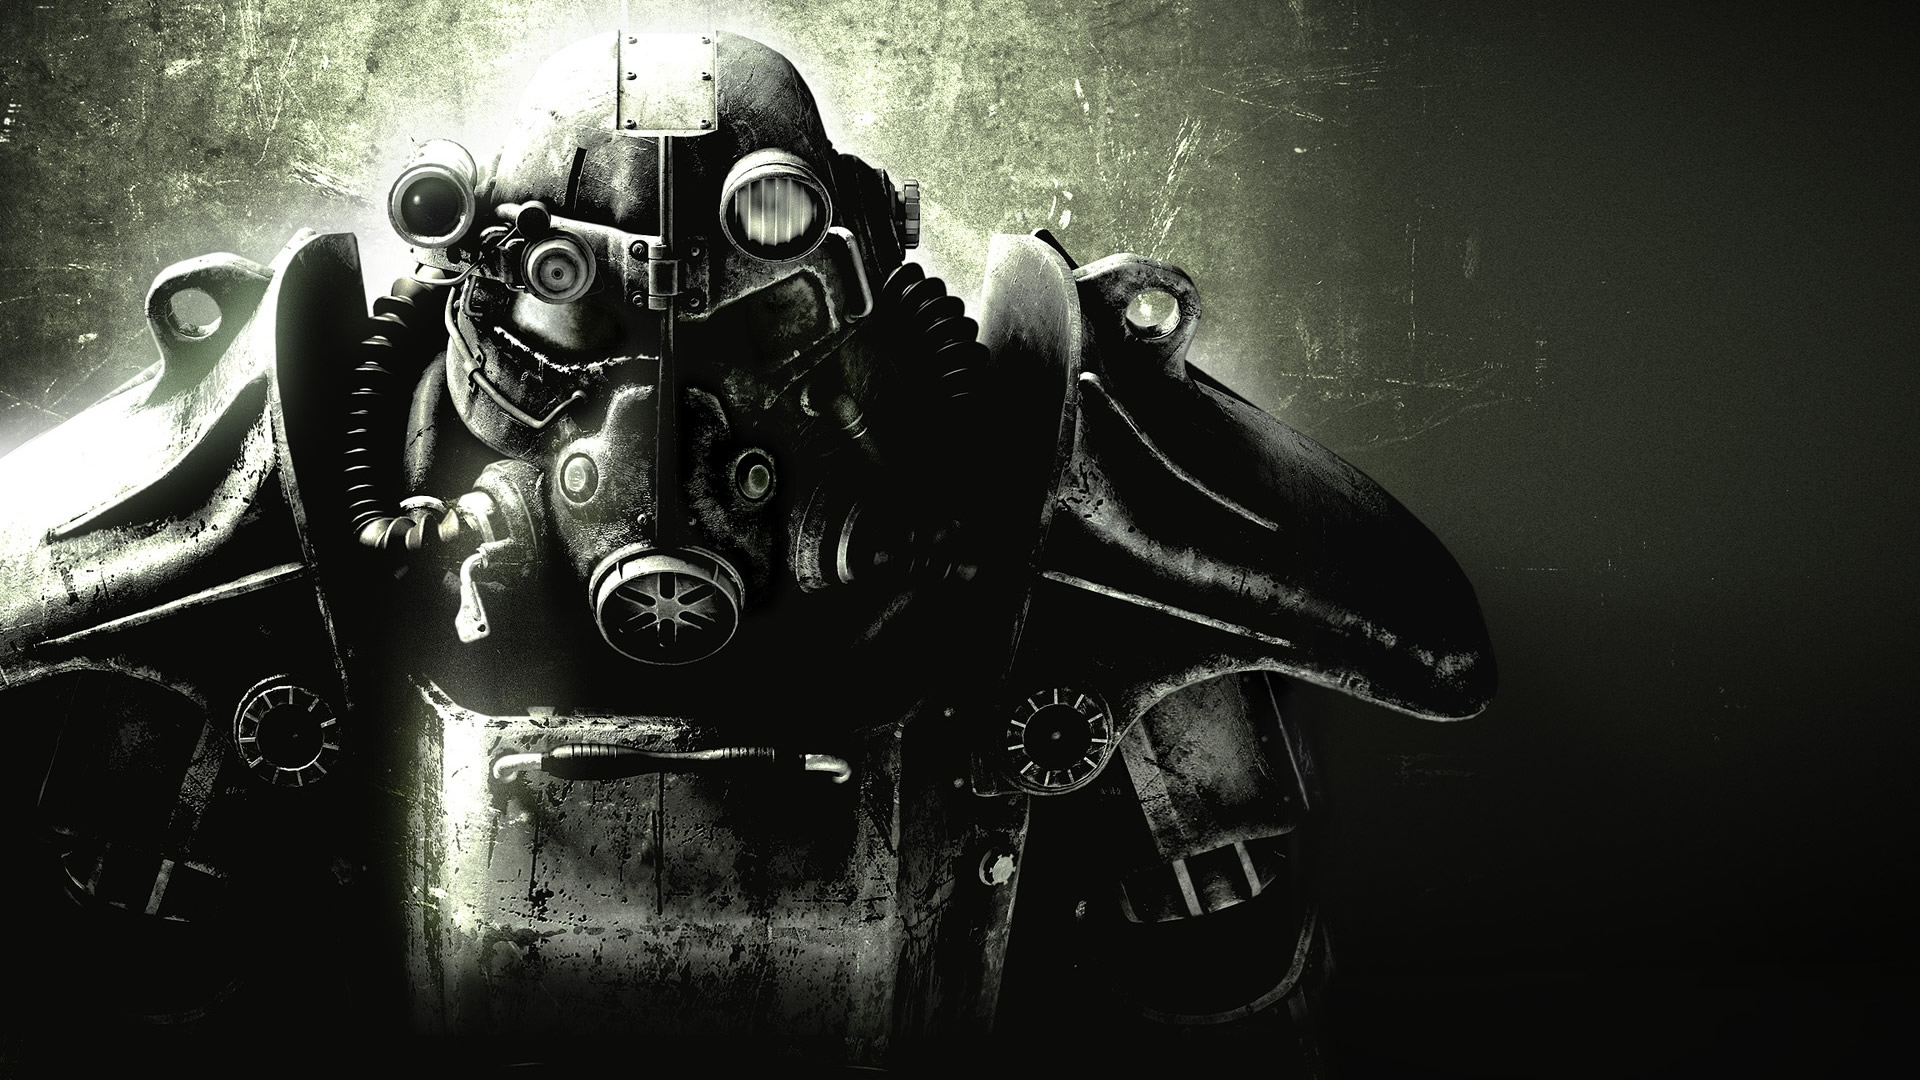 Image fallout fallout 3 hd wallpapersg war among the stars fallout fallout 3 hd wallpapersg thecheapjerseys